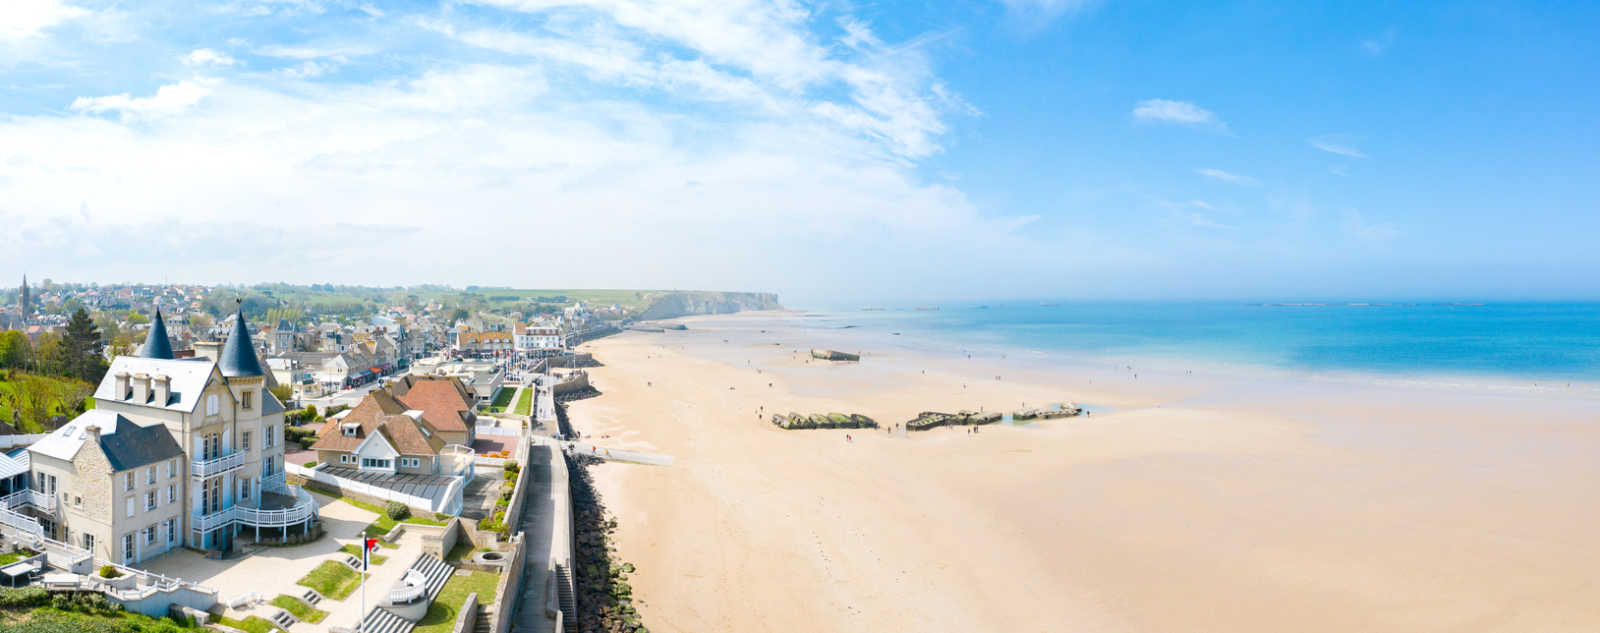 Discover the historic beaches of Normandy on a Normandy tour